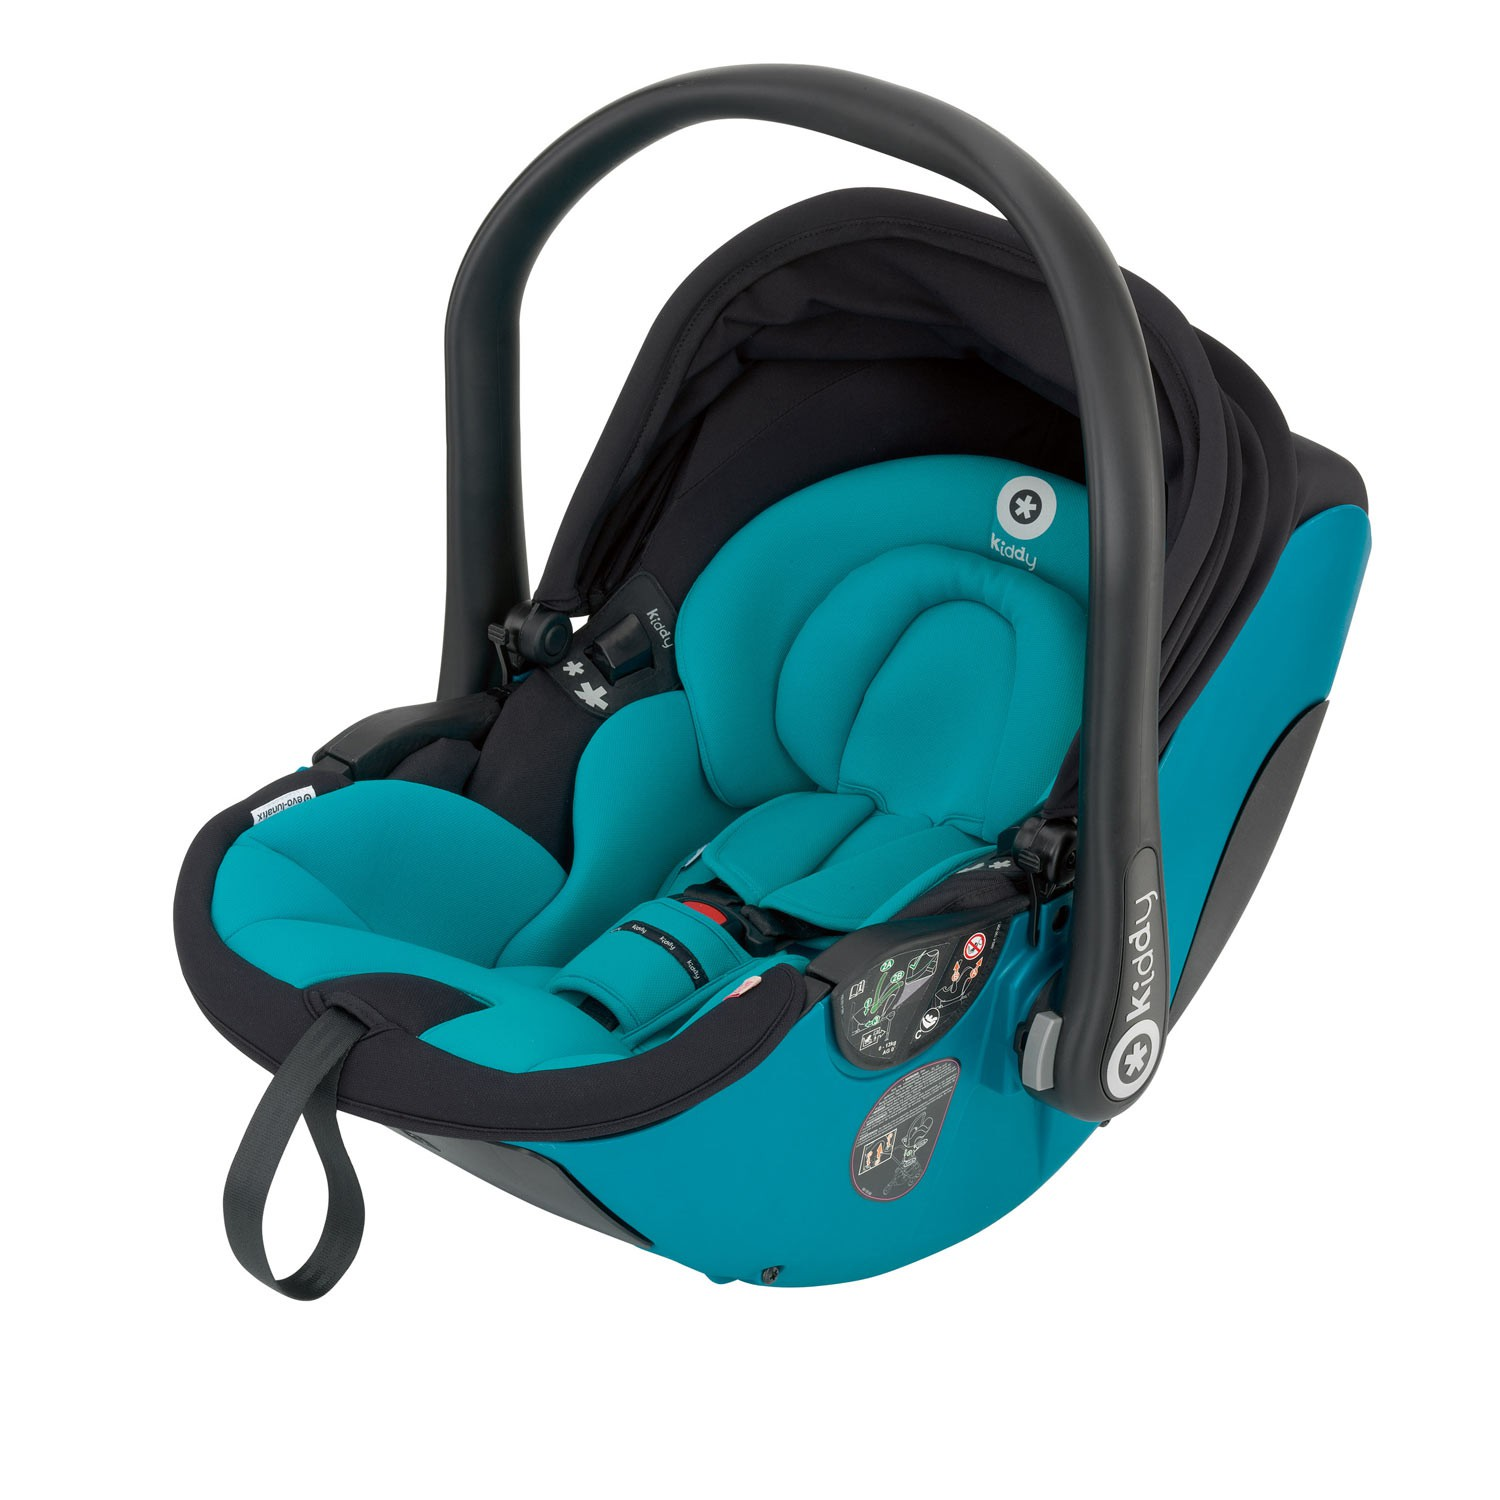 Kiddy Babyschale evo-lunafix 024 hawaii inkl. Isofix Base 2